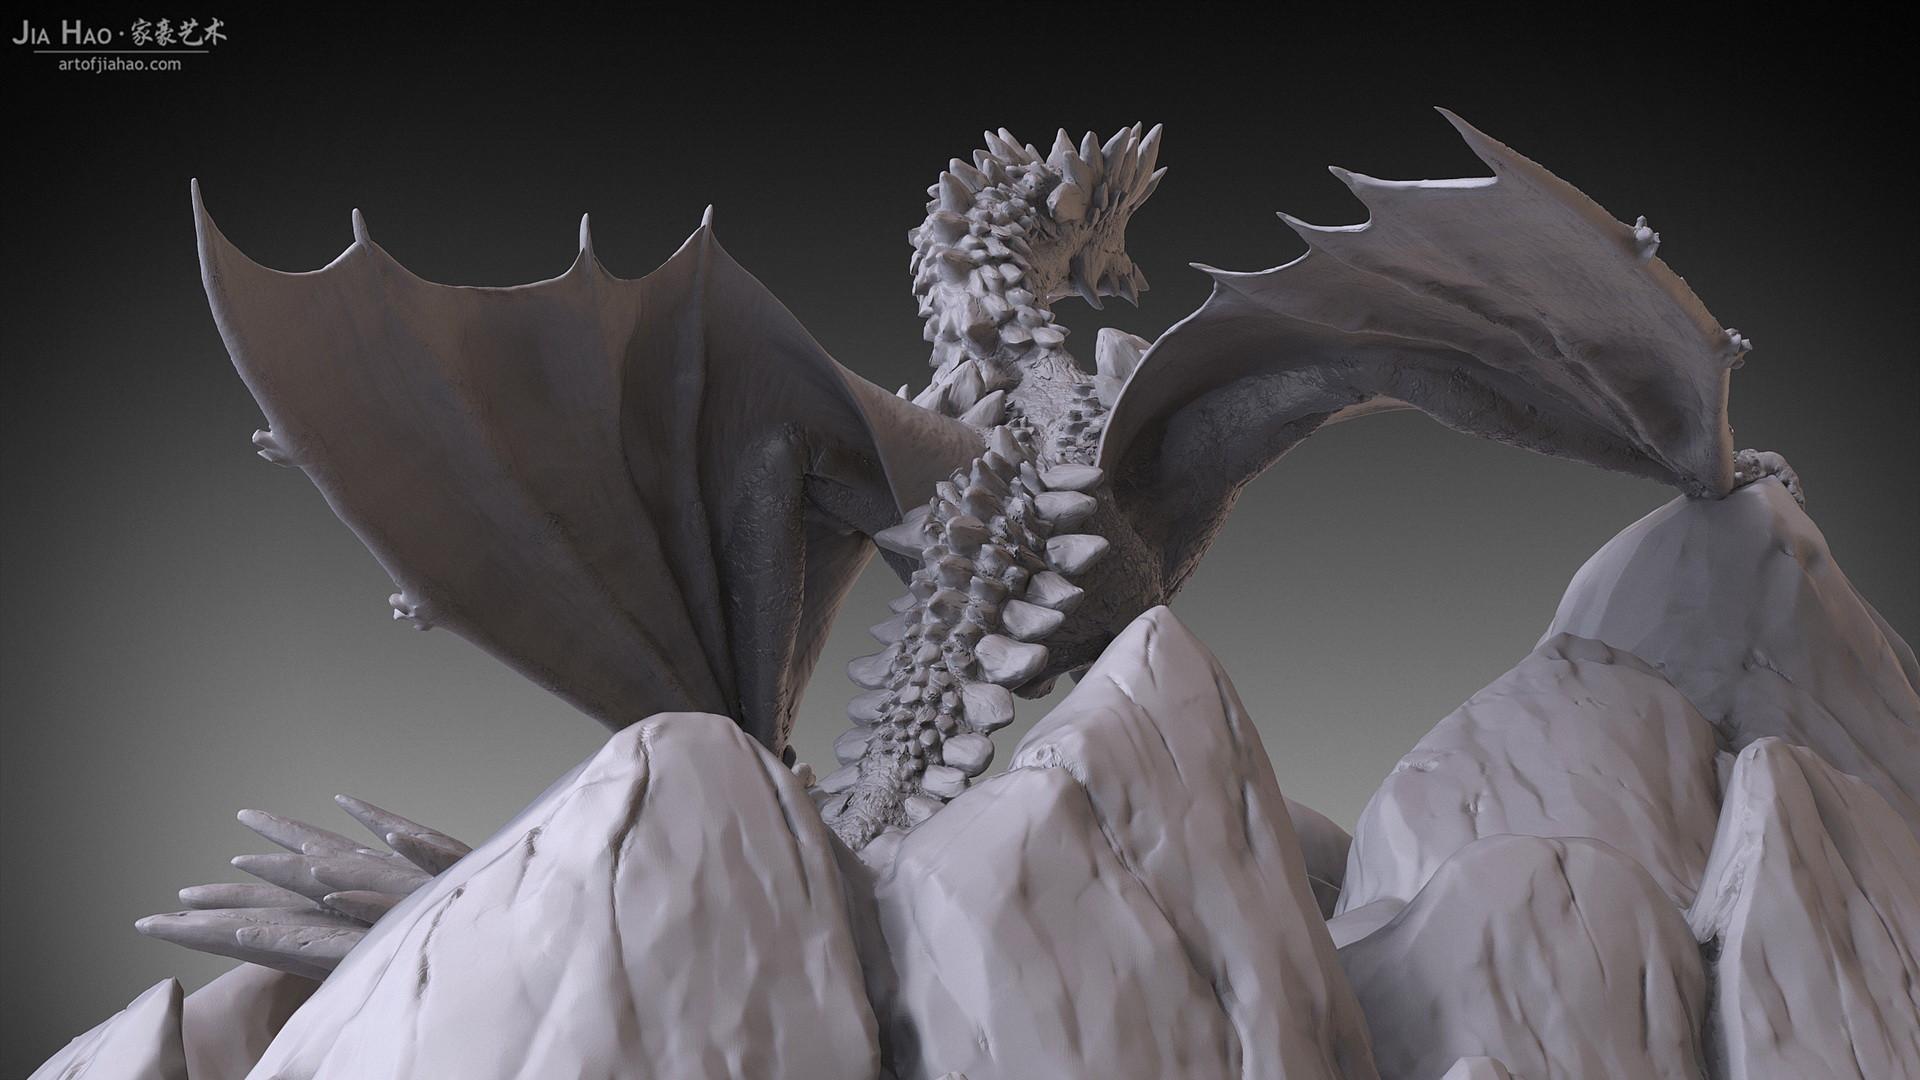 Jia hao 2017 rockdragon digitalsculpting 08